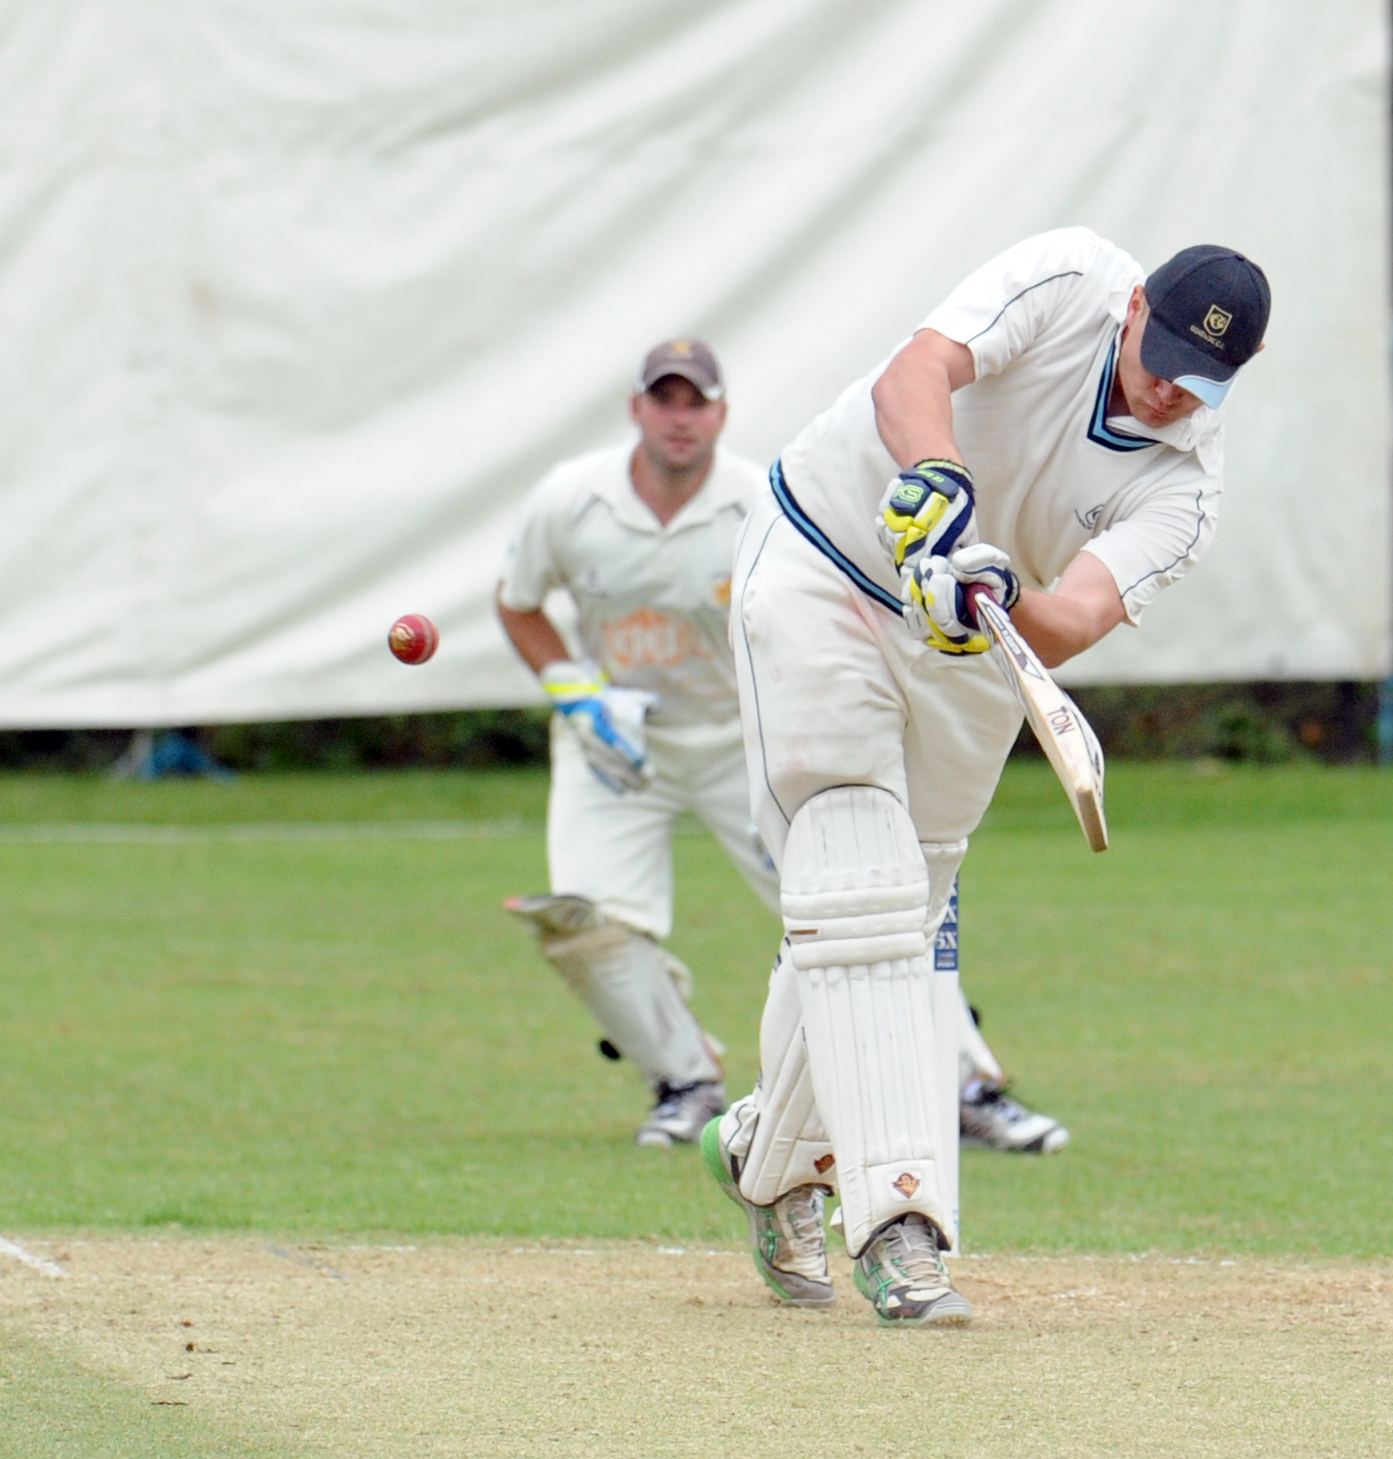 WIltshire opener Jack Haines was 80 not out at the end of day one